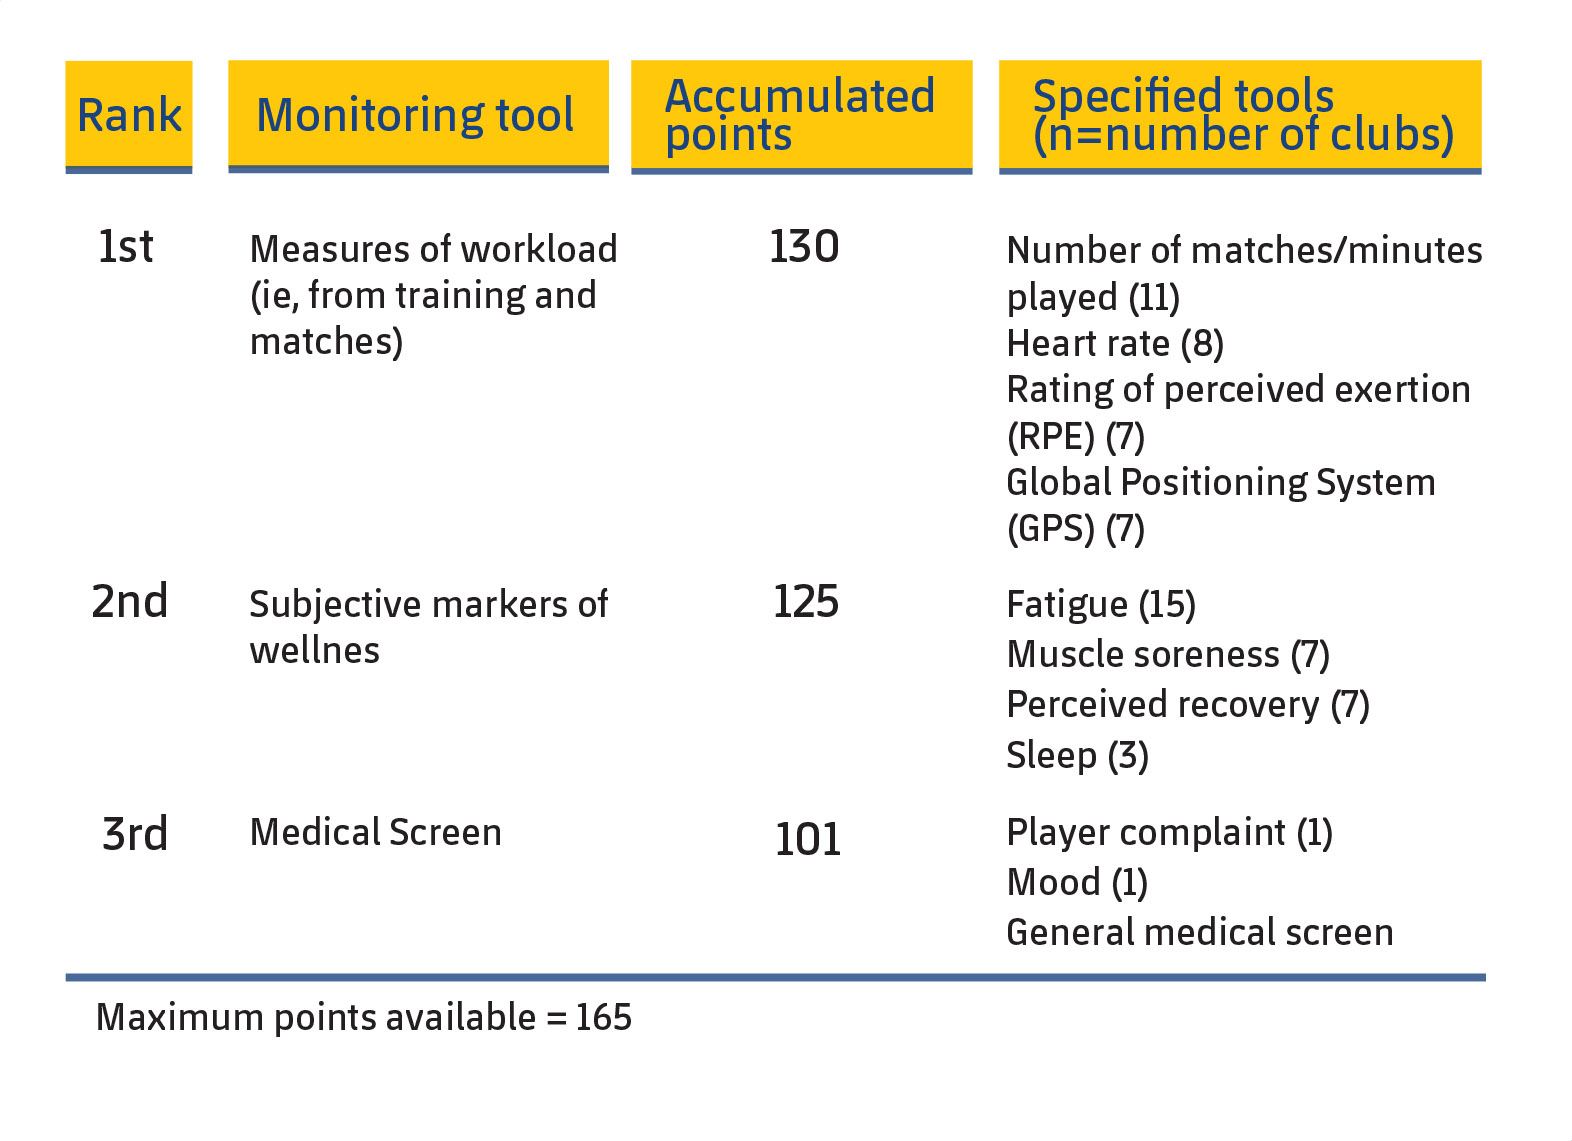 Figure 1. The three monitoring tools most used by UEFA Elite Club teams to evaluate their players' injury risk (McCall et al., 2016).